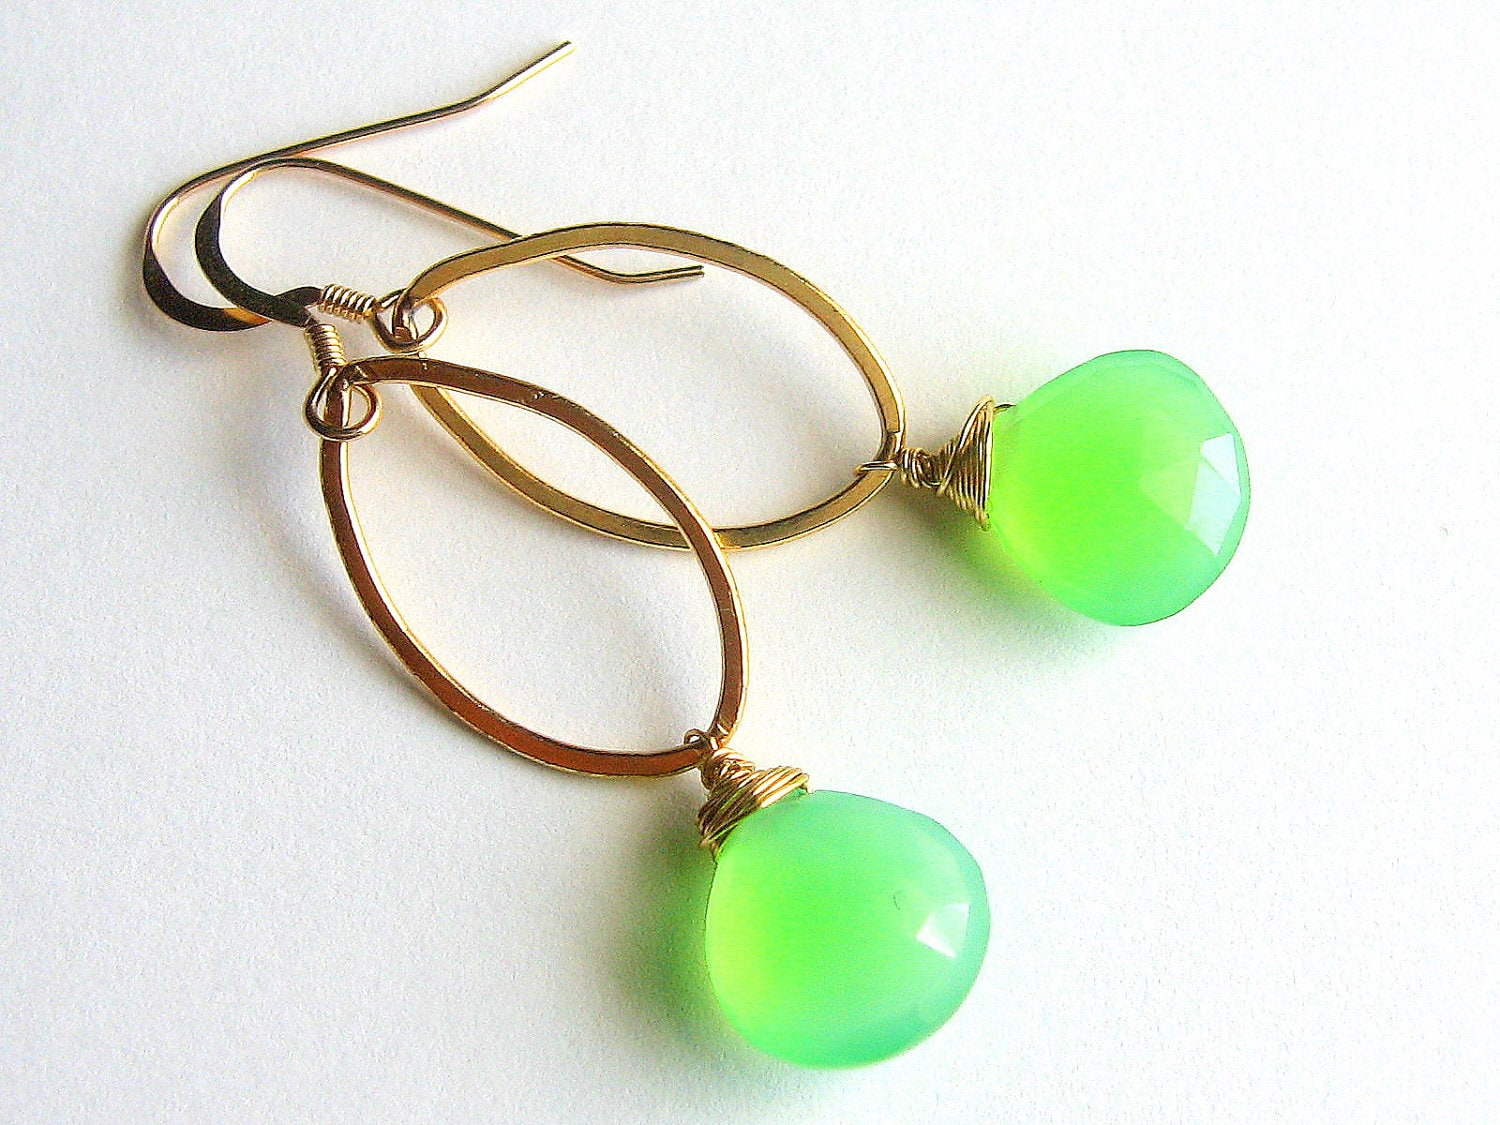 Green Teardrop Earrings, Gold Fill Hoops, Apple Green Chalcedony